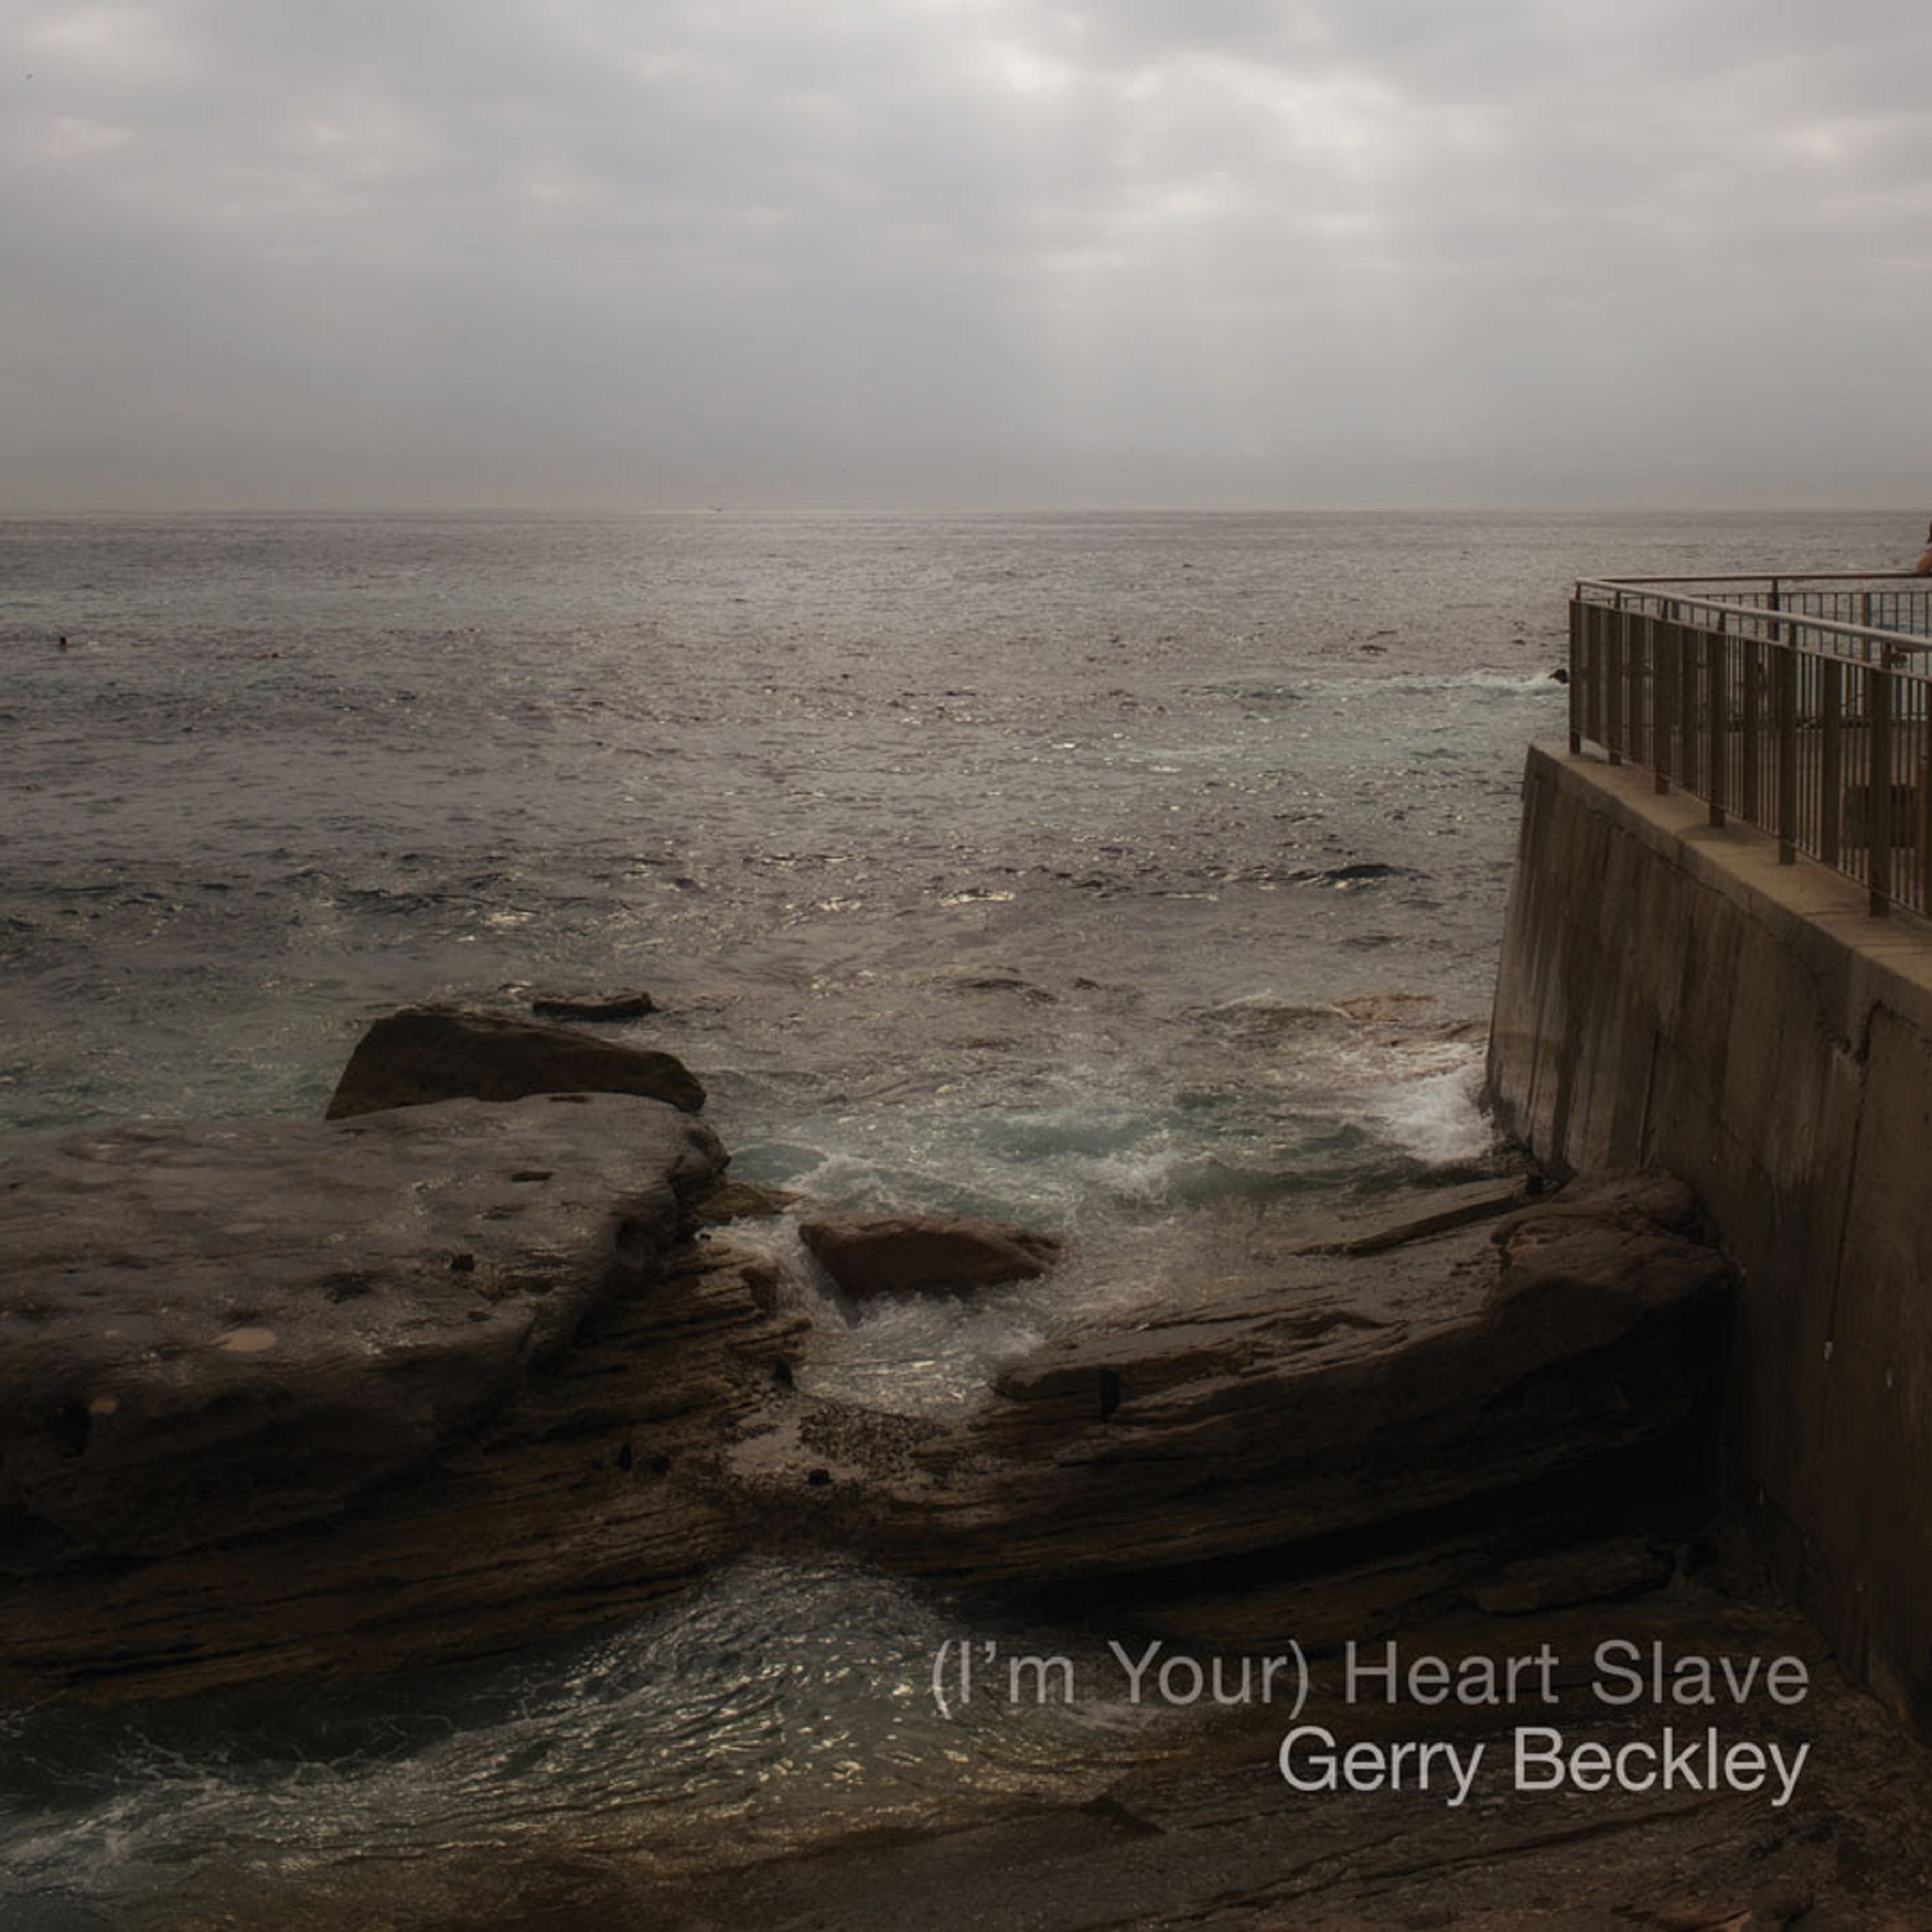 Gerry Beckley Co-Founding Member of America Releases New Single